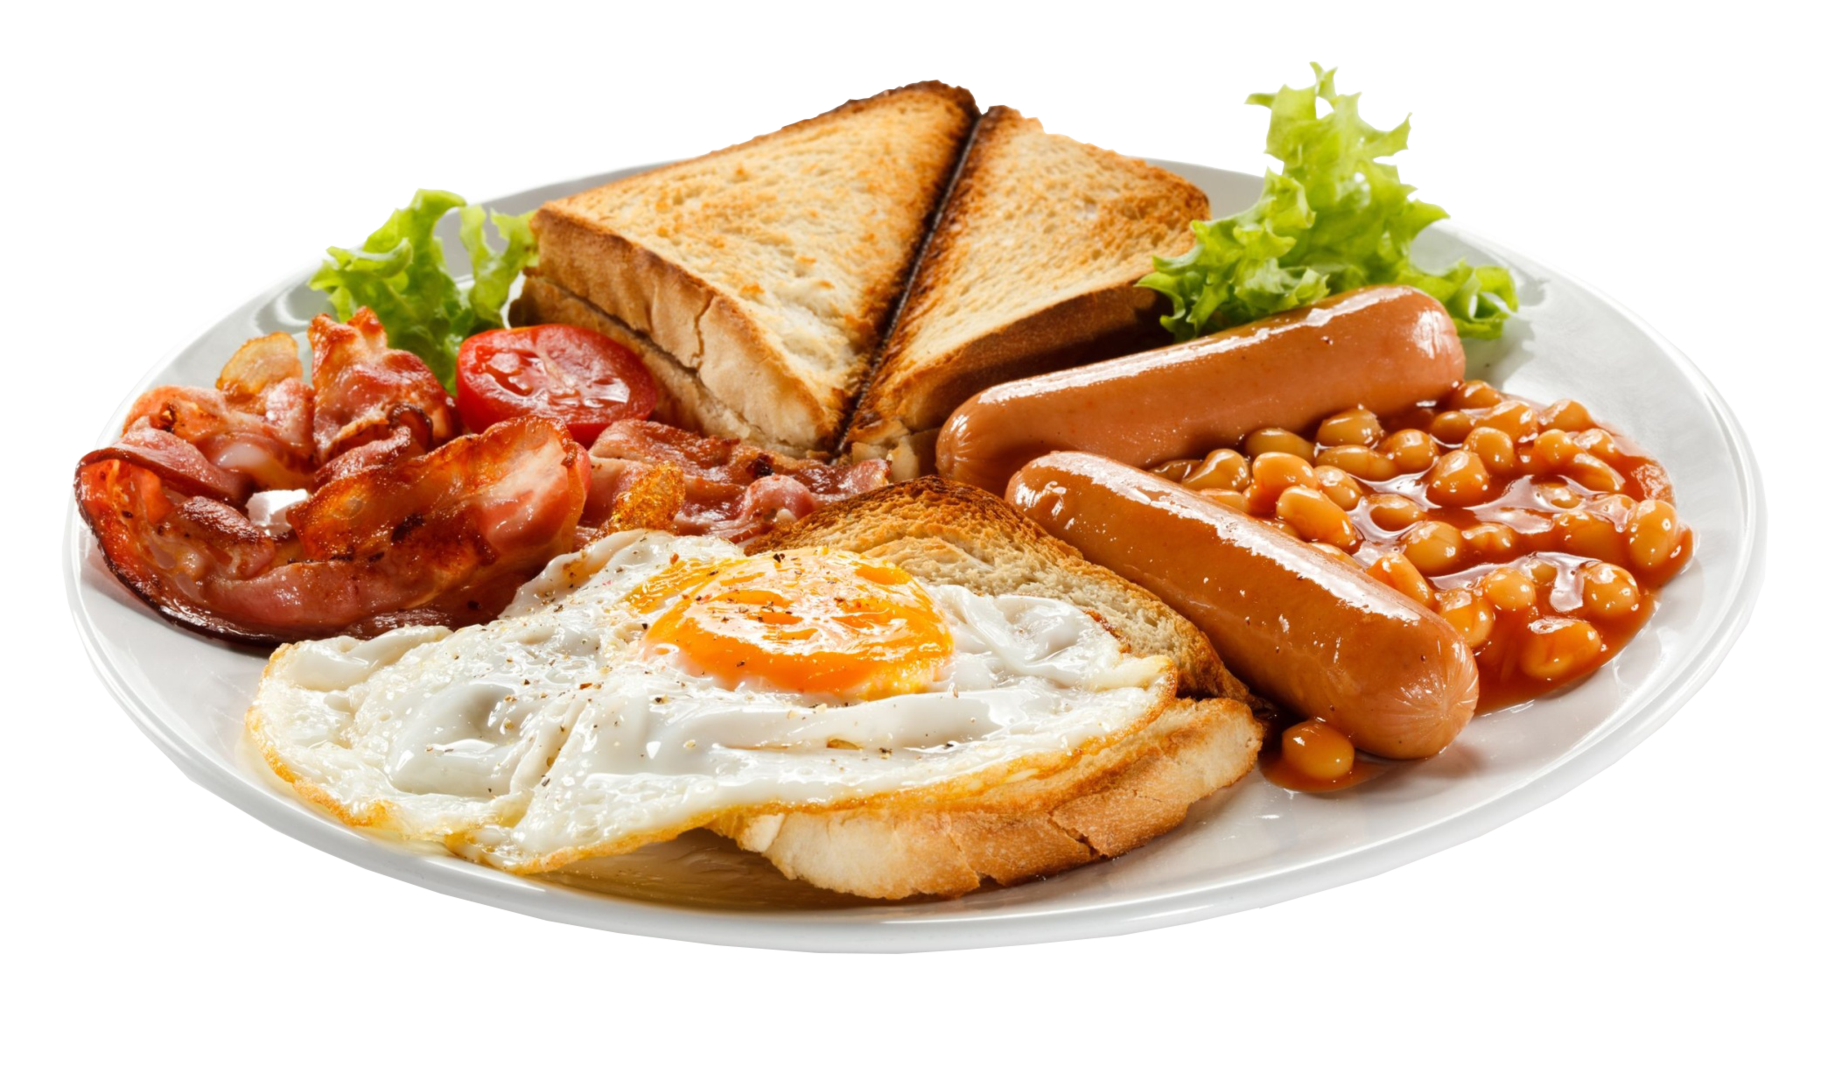 Breakfast Png & Free Breakfast.png Transparent Images #2701.